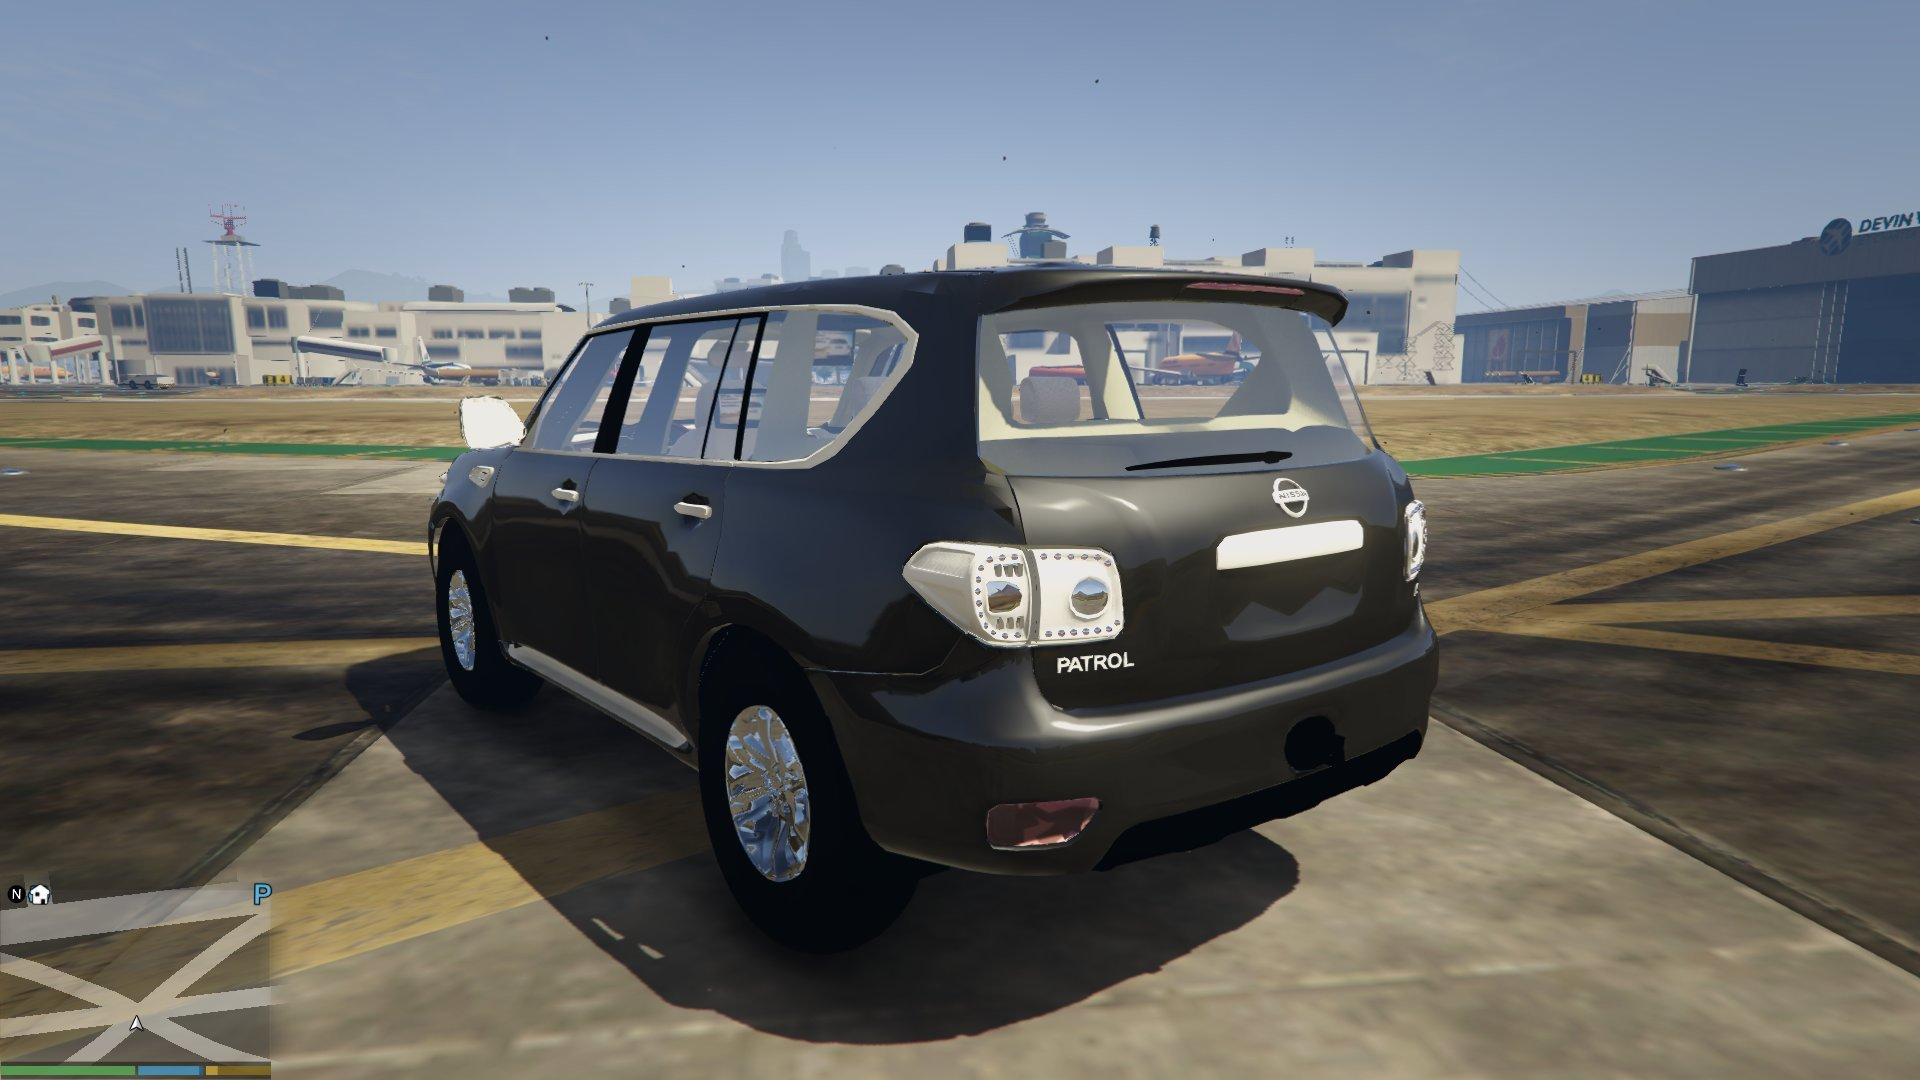 nissan patrol 2015 vehicules pour gta v sur gta modding. Black Bedroom Furniture Sets. Home Design Ideas